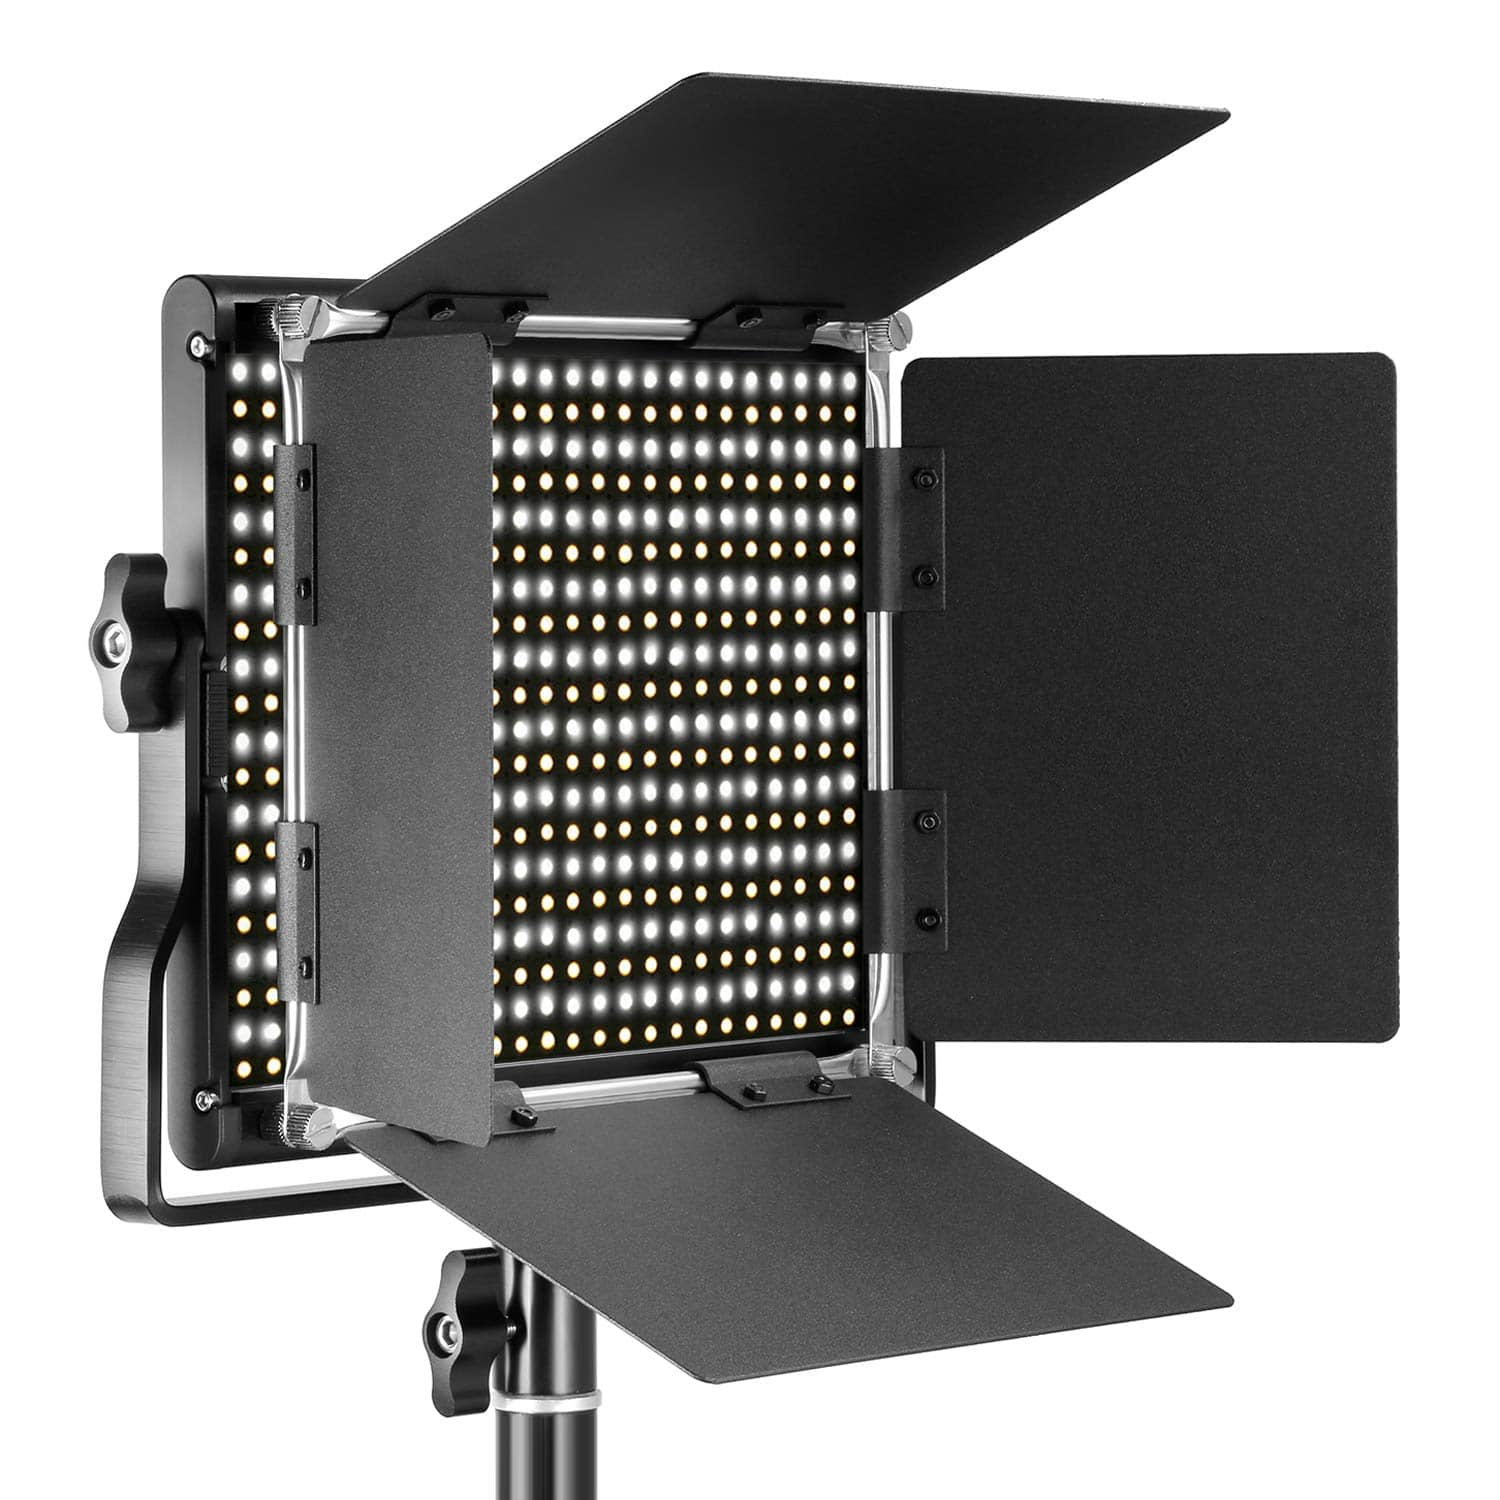 Neewer 660 LED Dimmable Bi-Color Video Light w/ Barndoor - $60 + FSSS